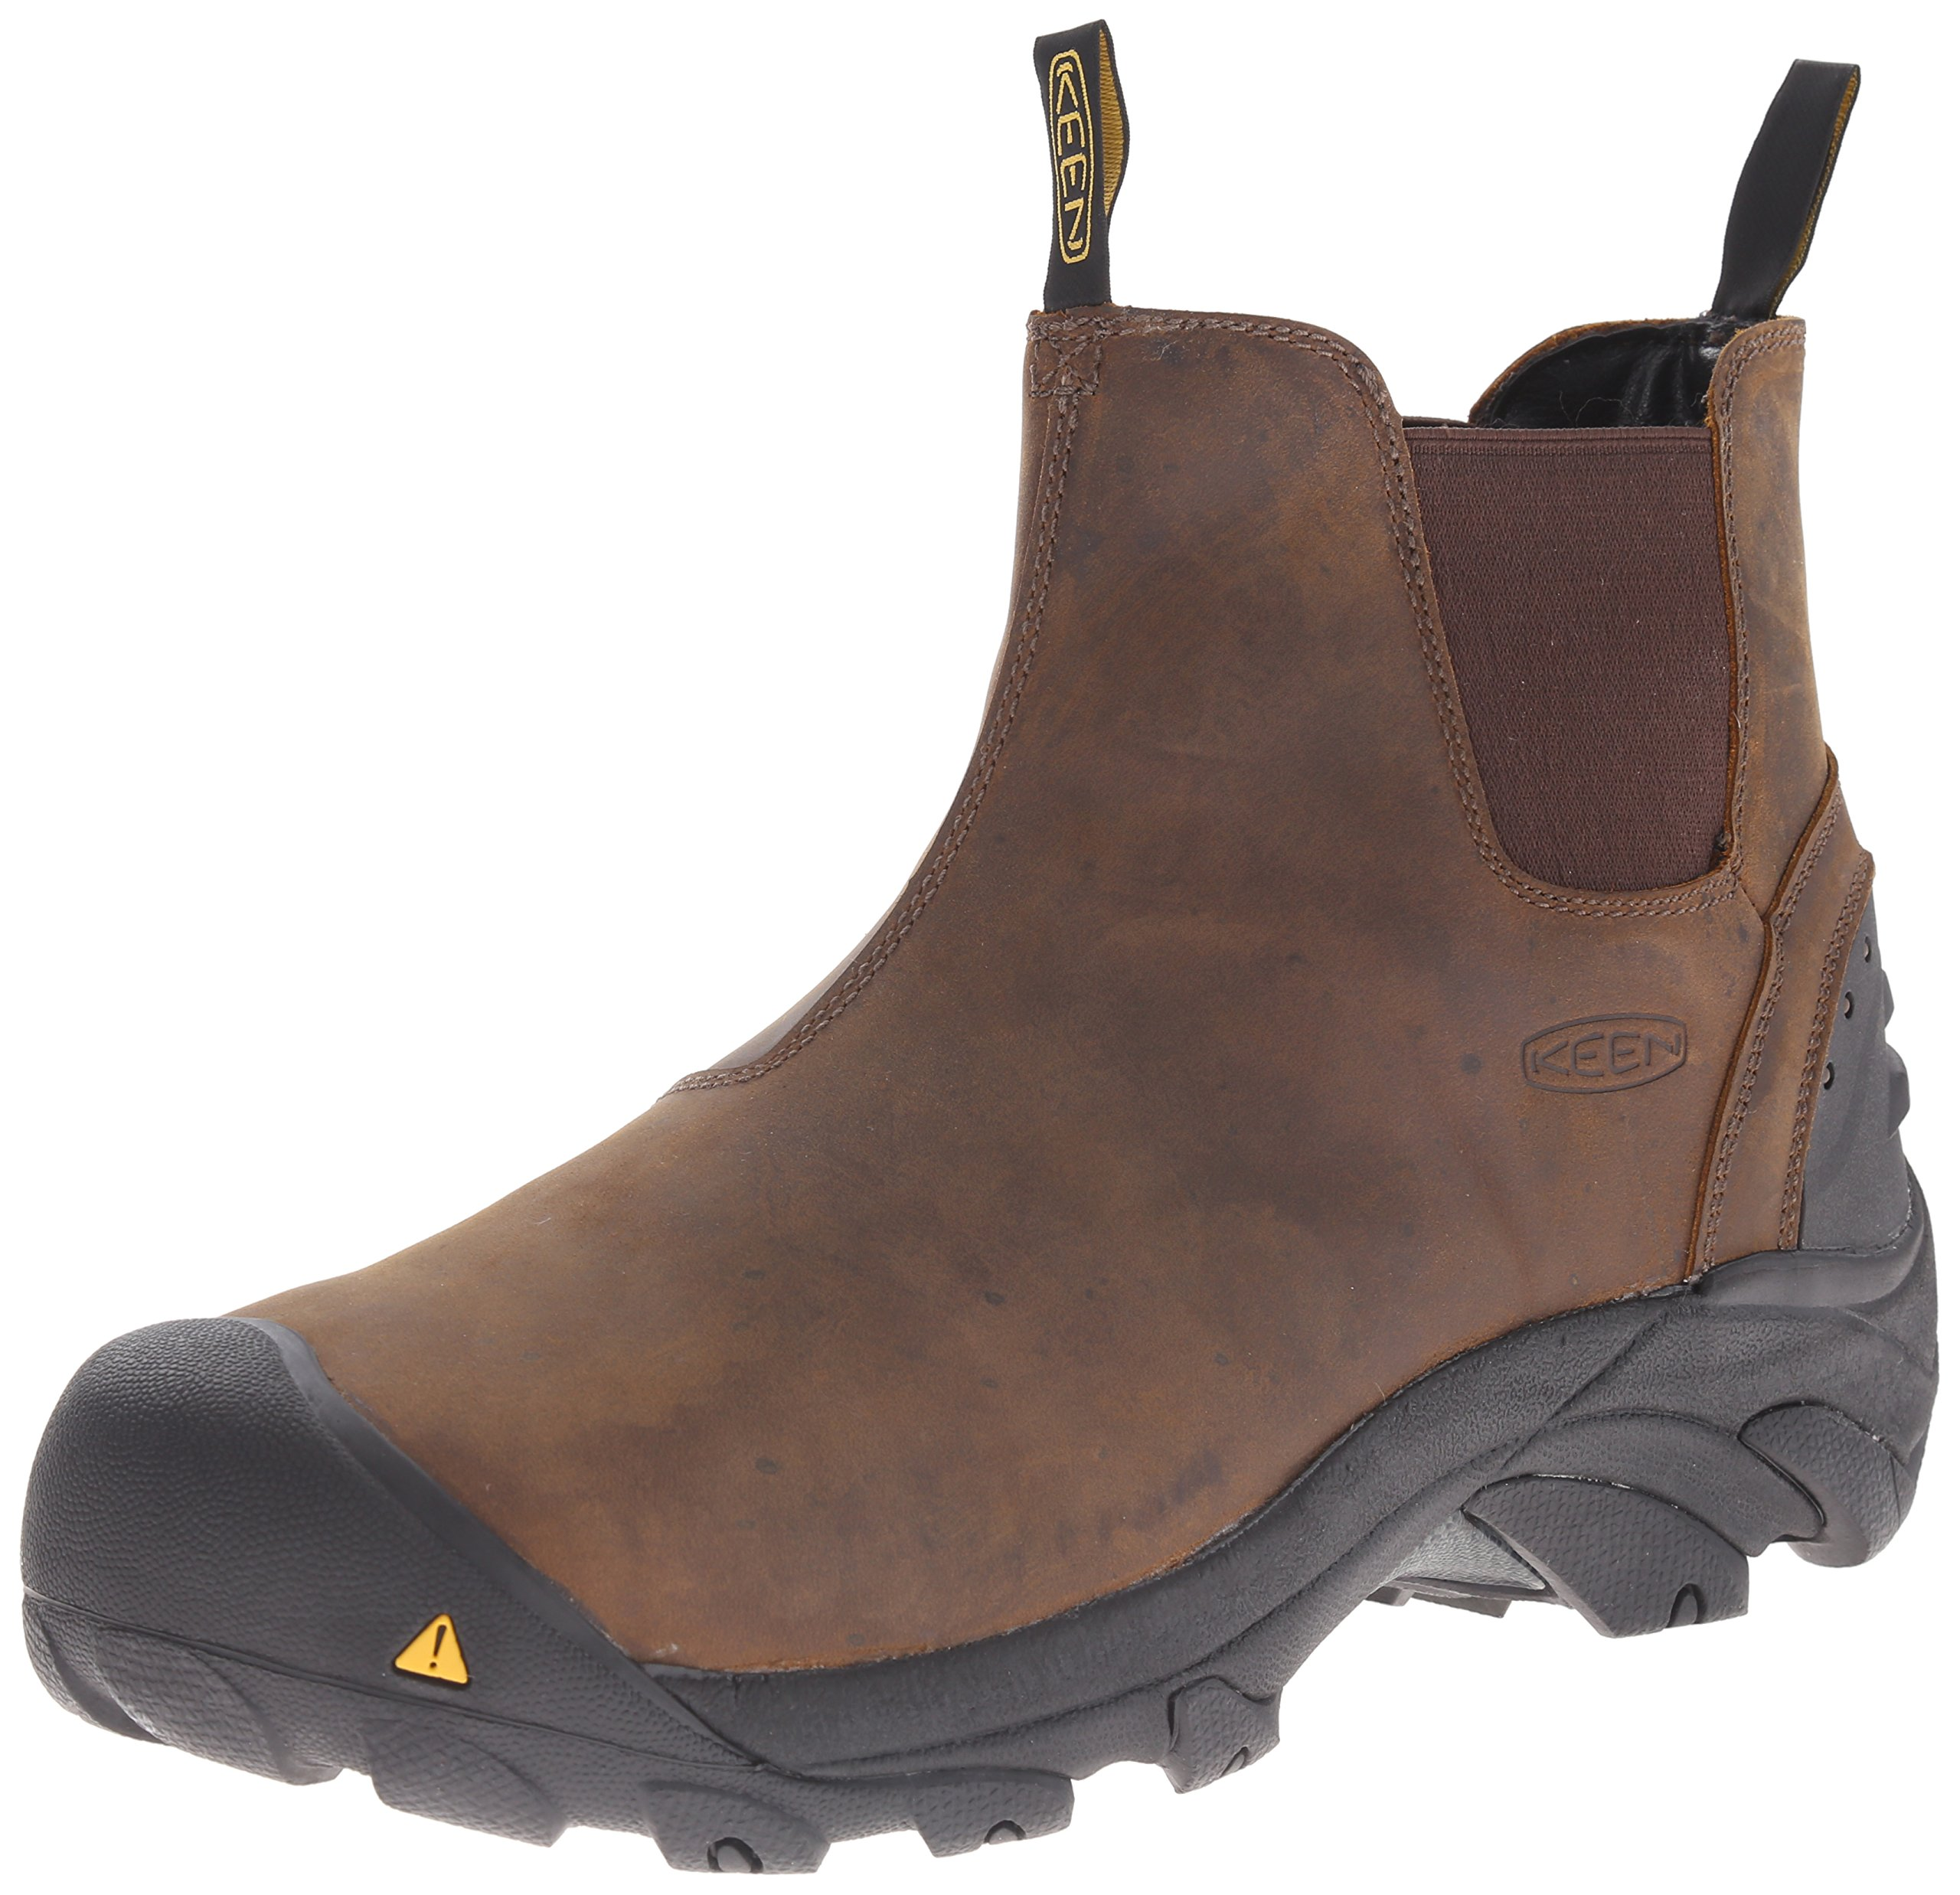 Keen Utility Men's Detroit Slip-On Work Boot, Cascade Brown, 10.5 D US